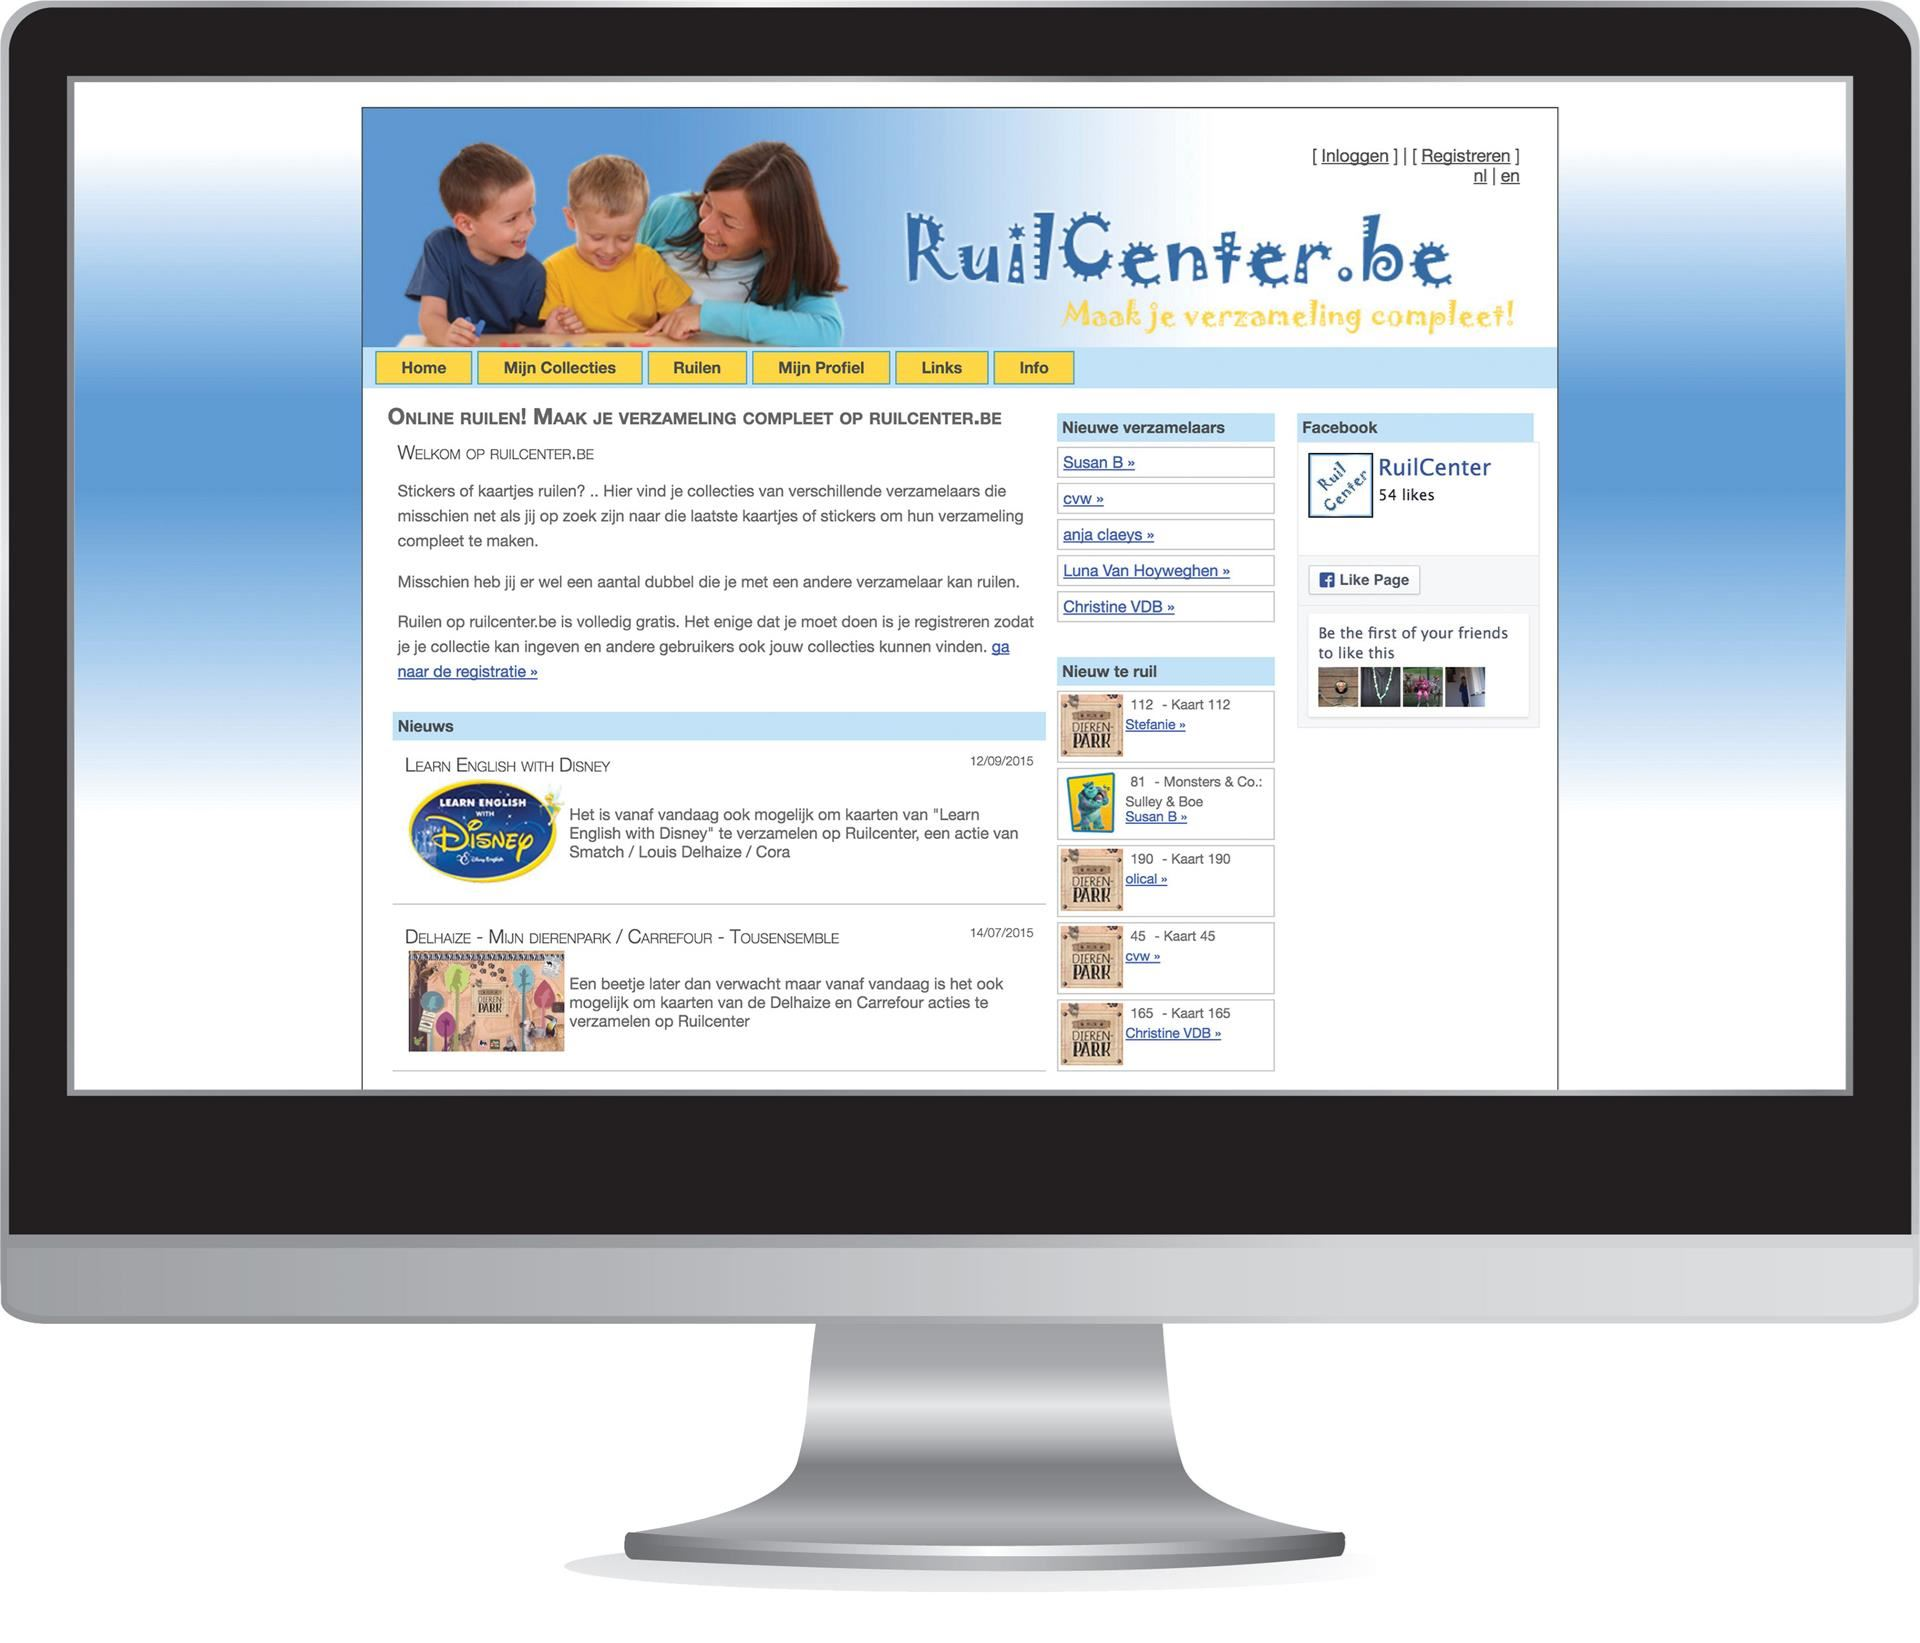 ruilcenter.be